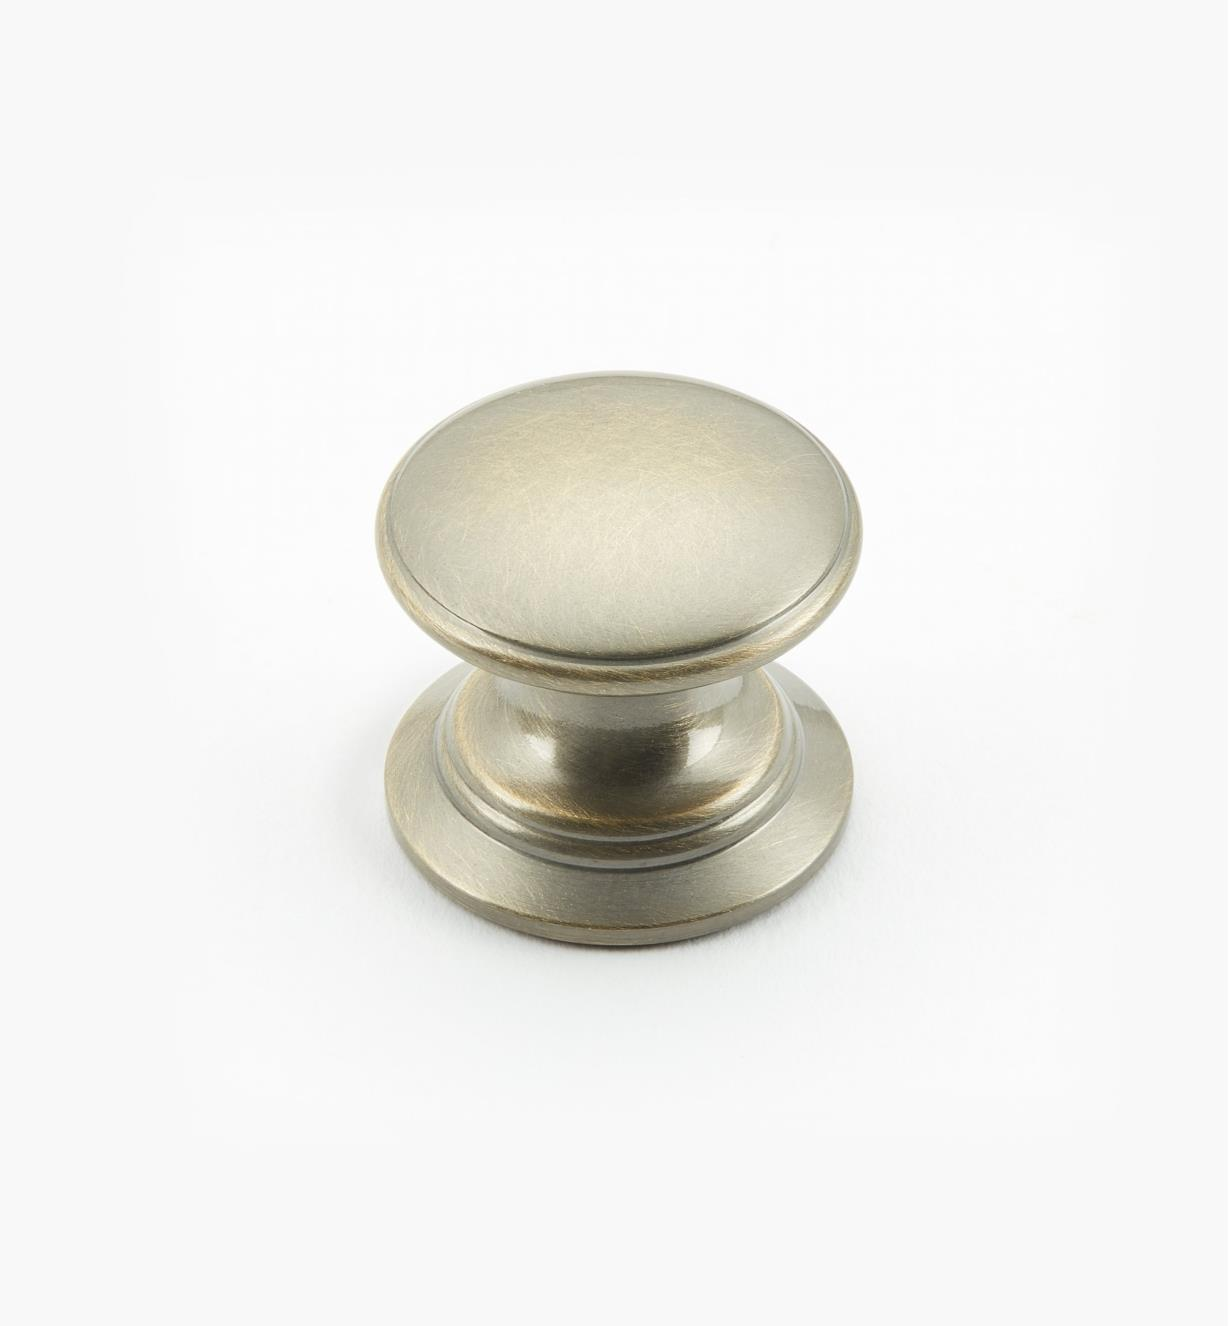 "02W1418 - Antique Brass Suite - 1"" x 7/8"" Round Brass Knob"